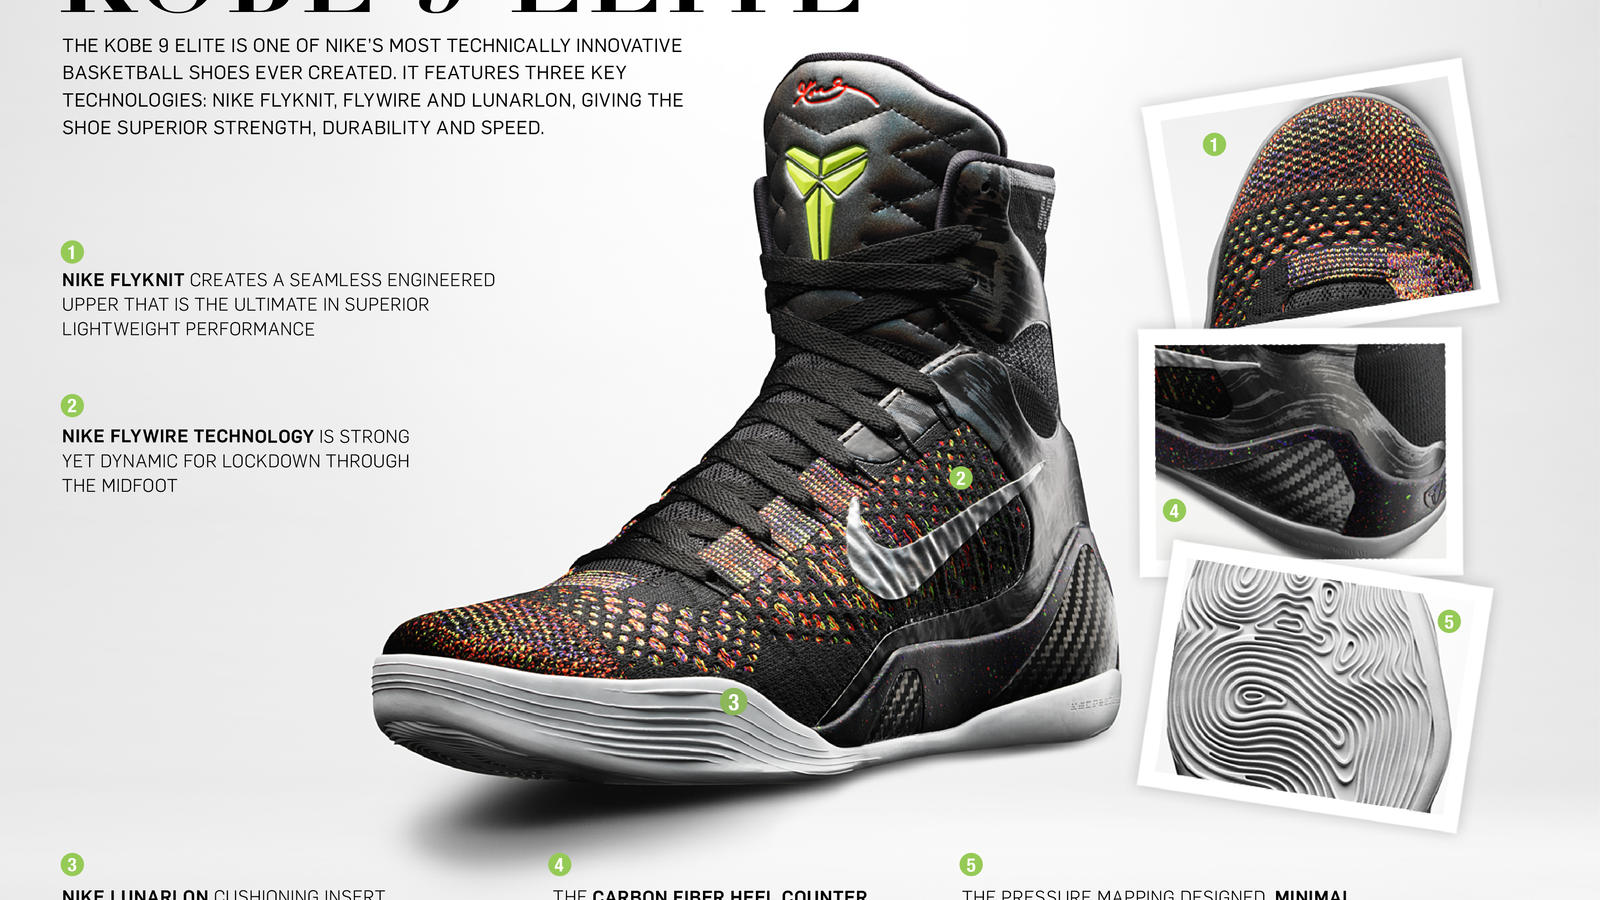 KOBE 9 Elite Tech Sheet